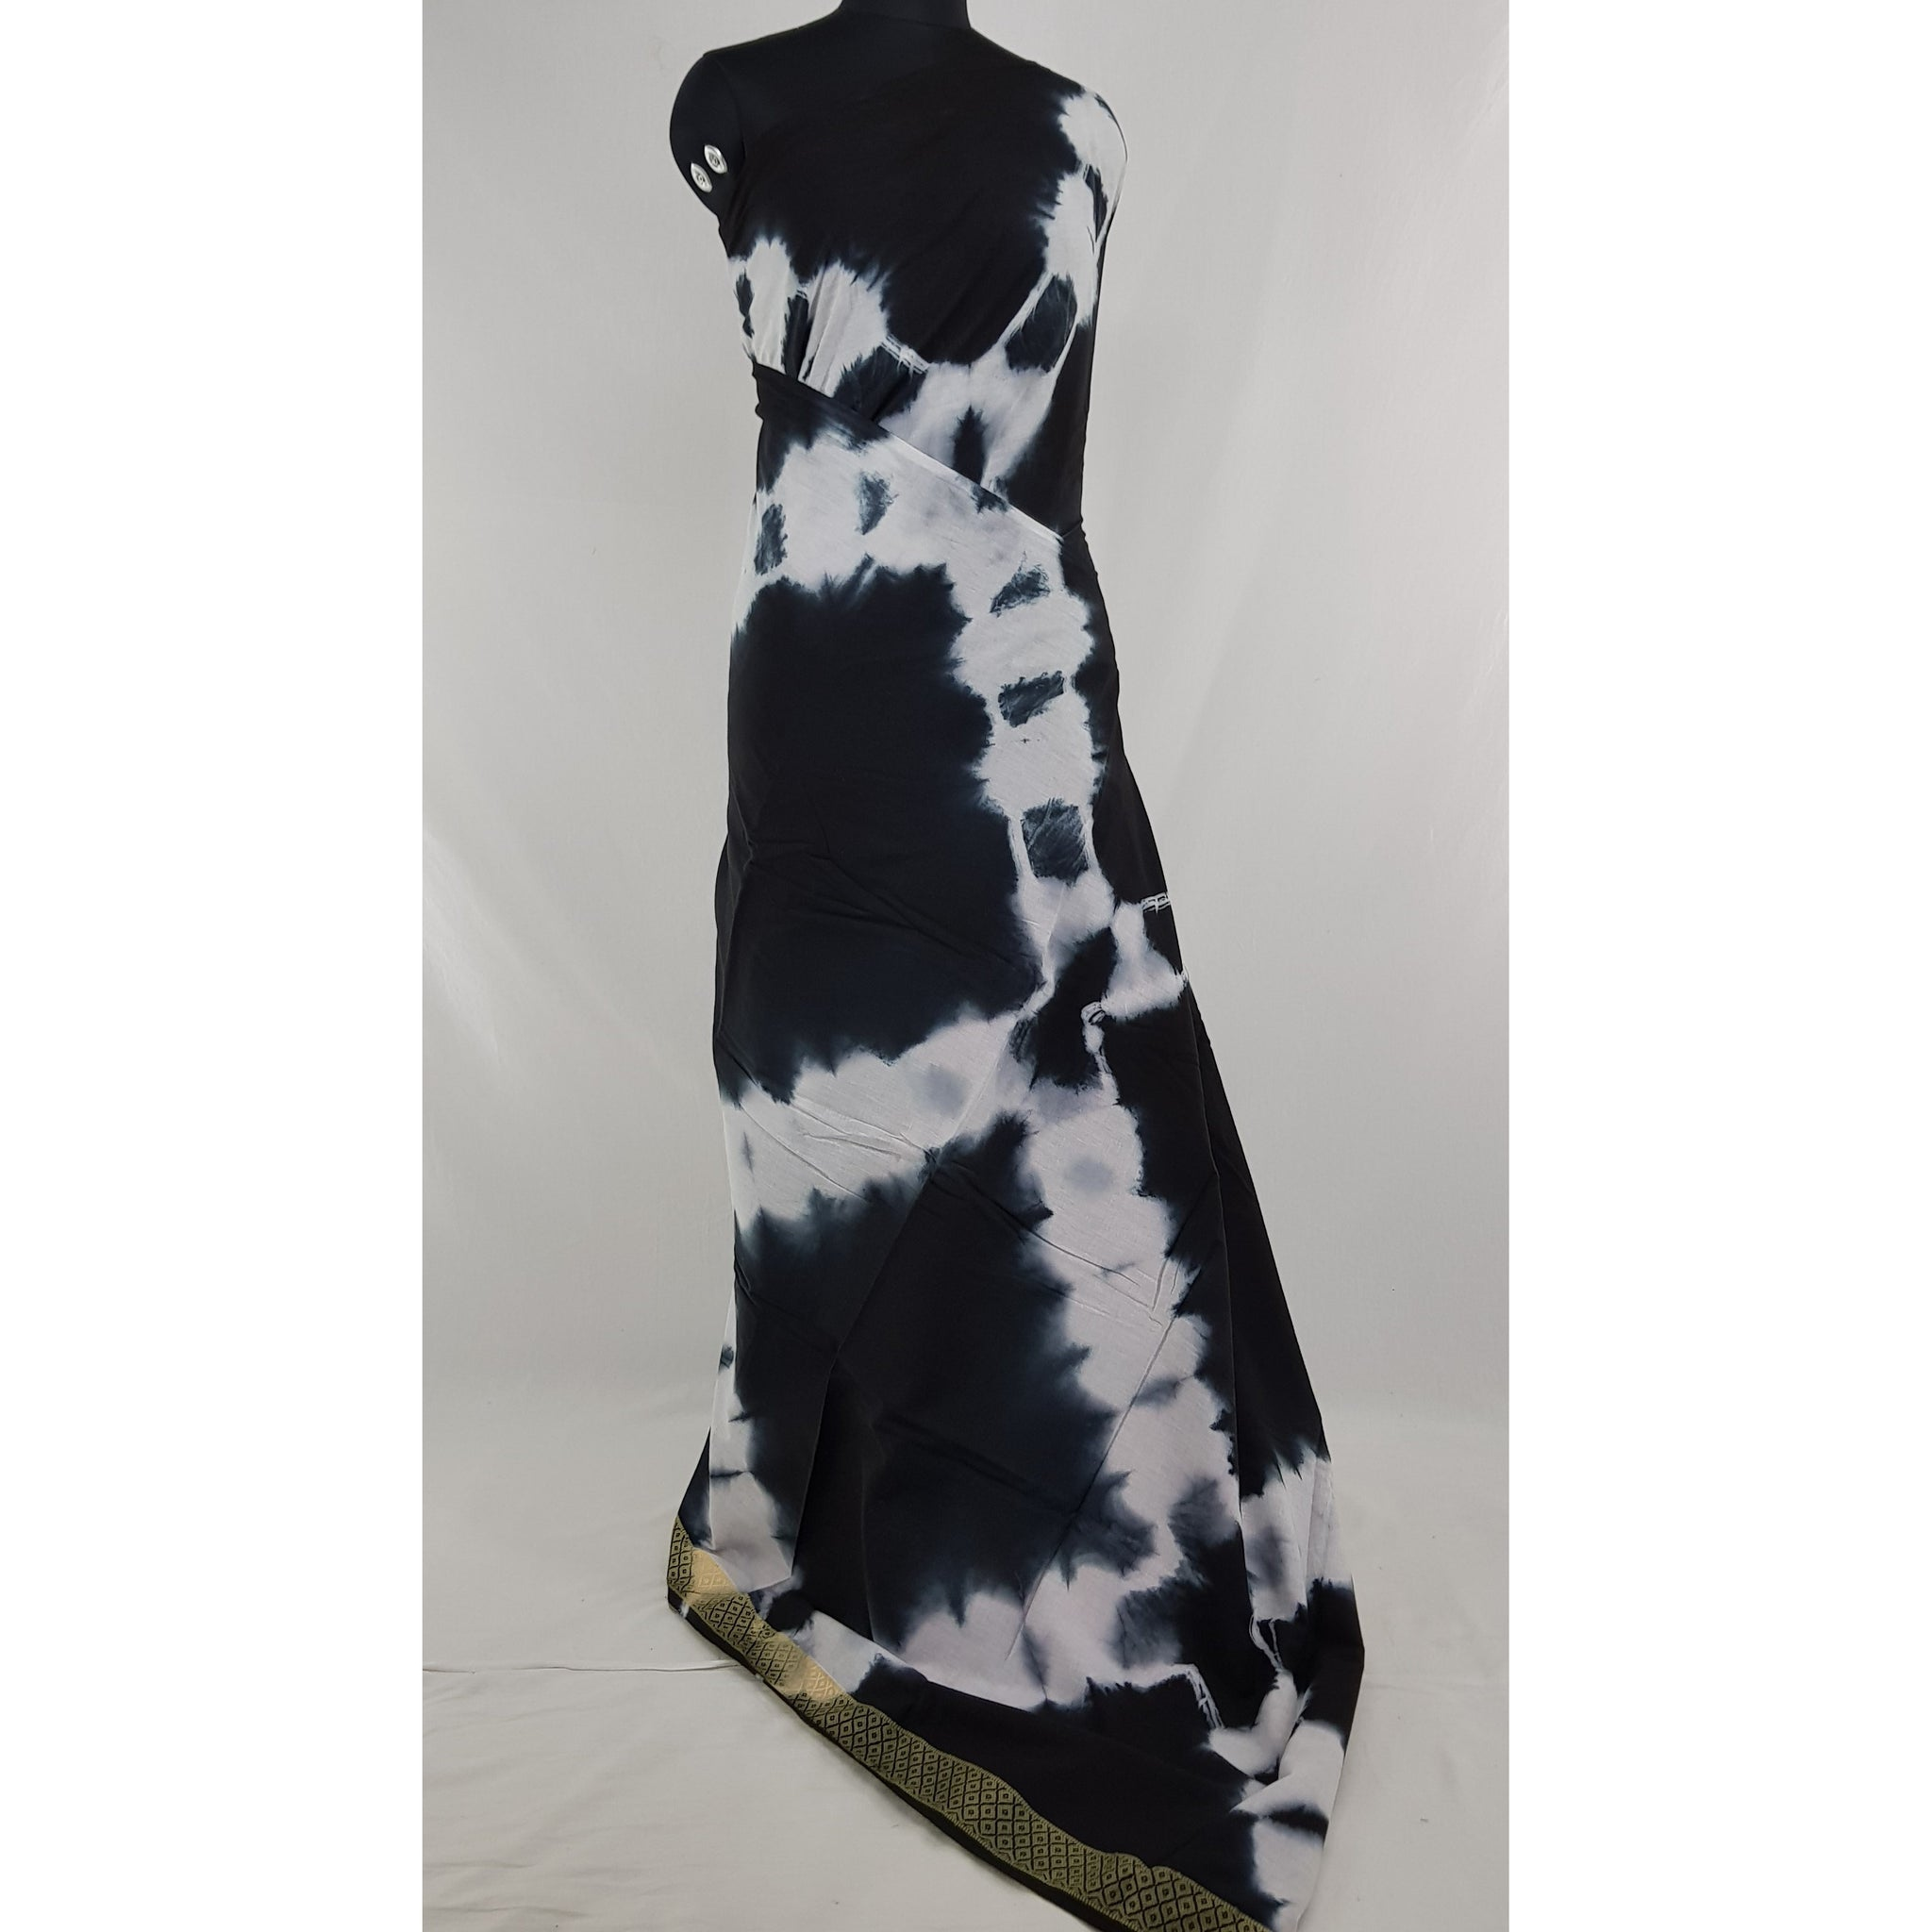 Hand Block Printed Bagru Black and white color mul mul cotton saree with batik blouse - Vinshika